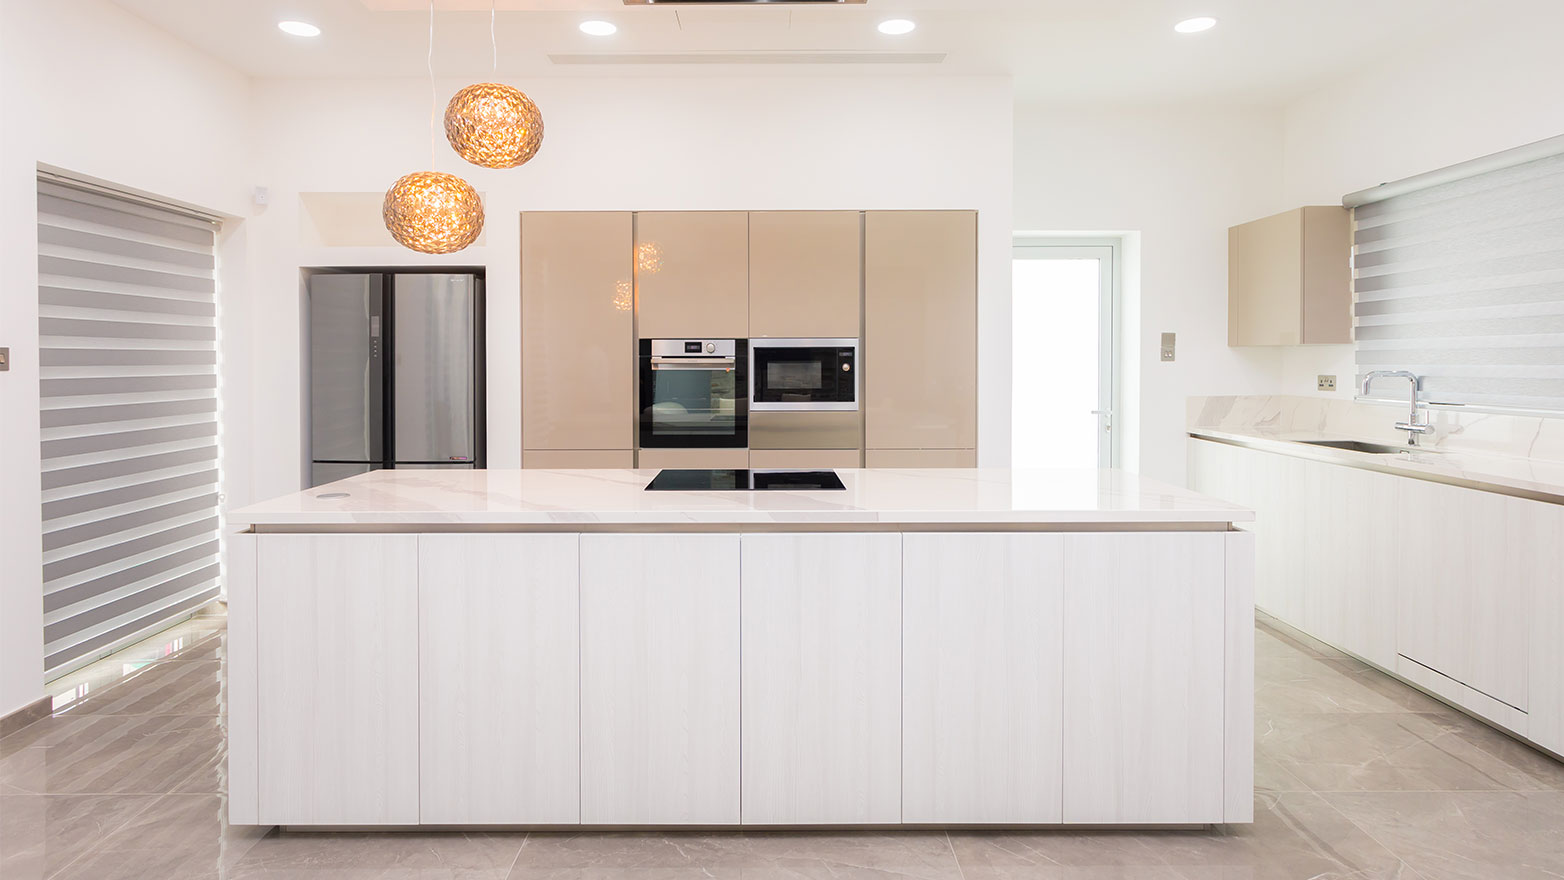 Zecchinon Cucine Sharon Kalea Kitchen Renovation Cyprus Kitchen Studio Living & More Larnaca